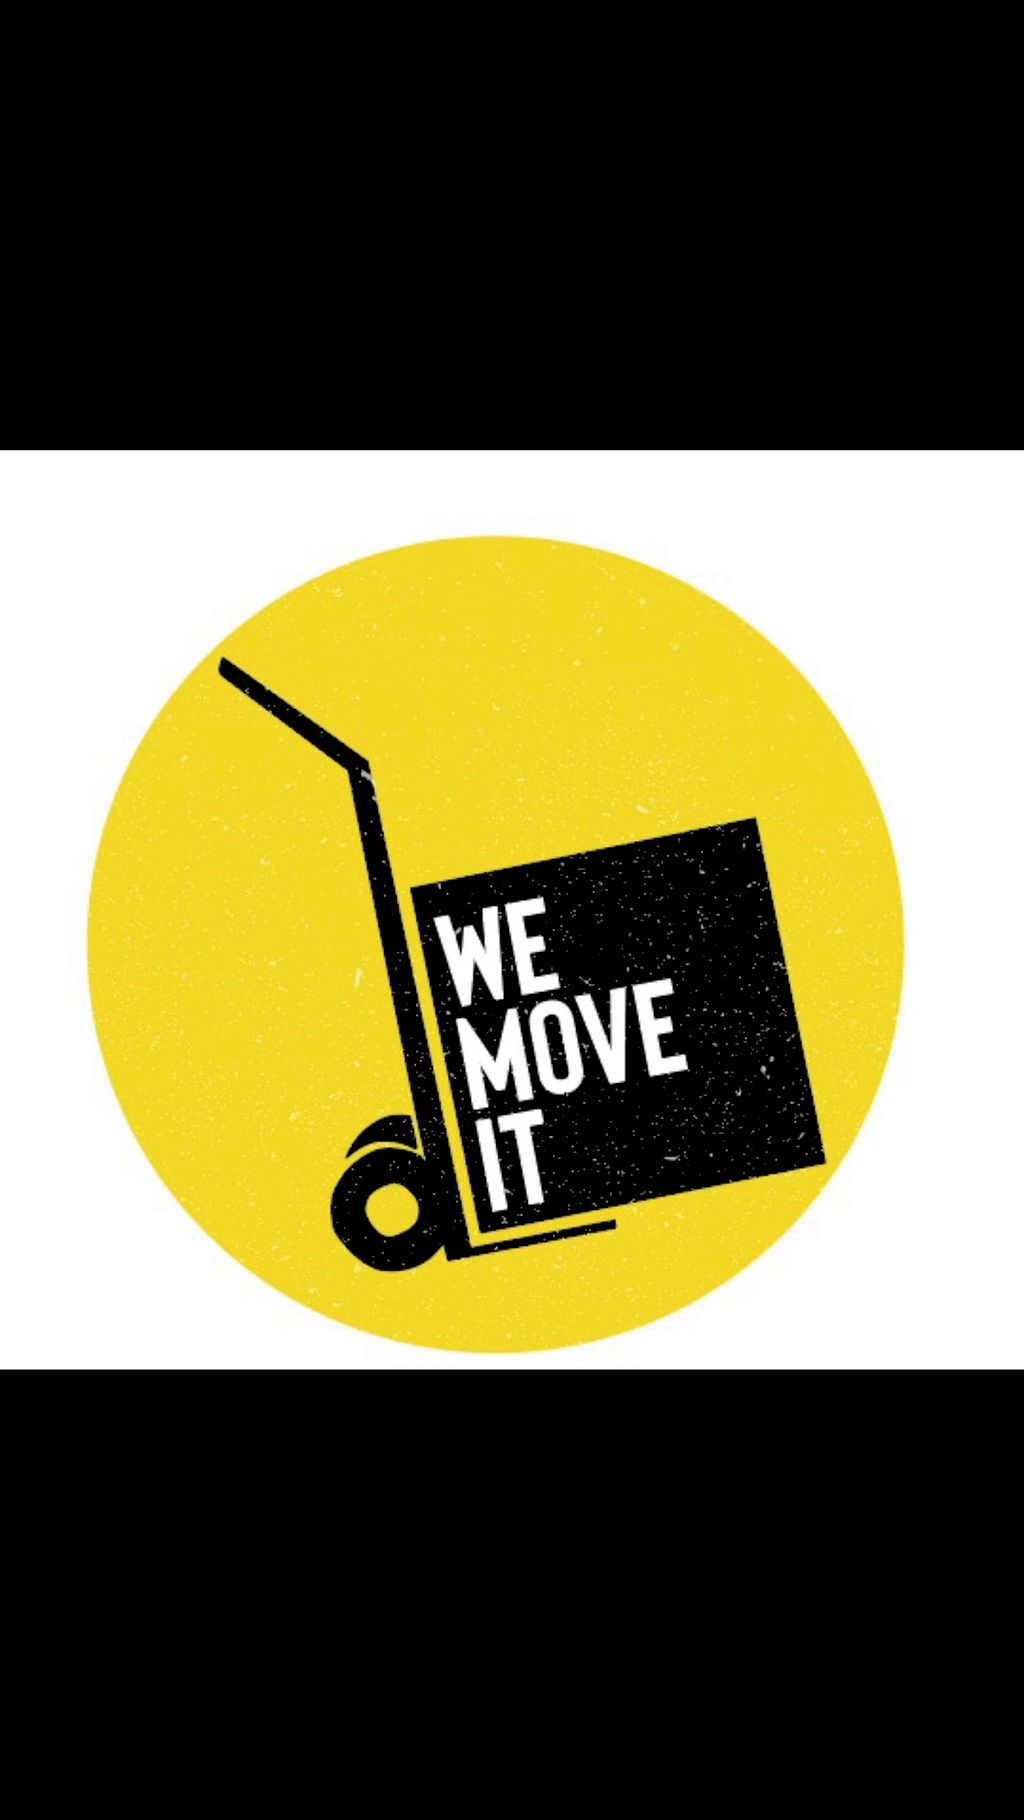 We Move It LLC